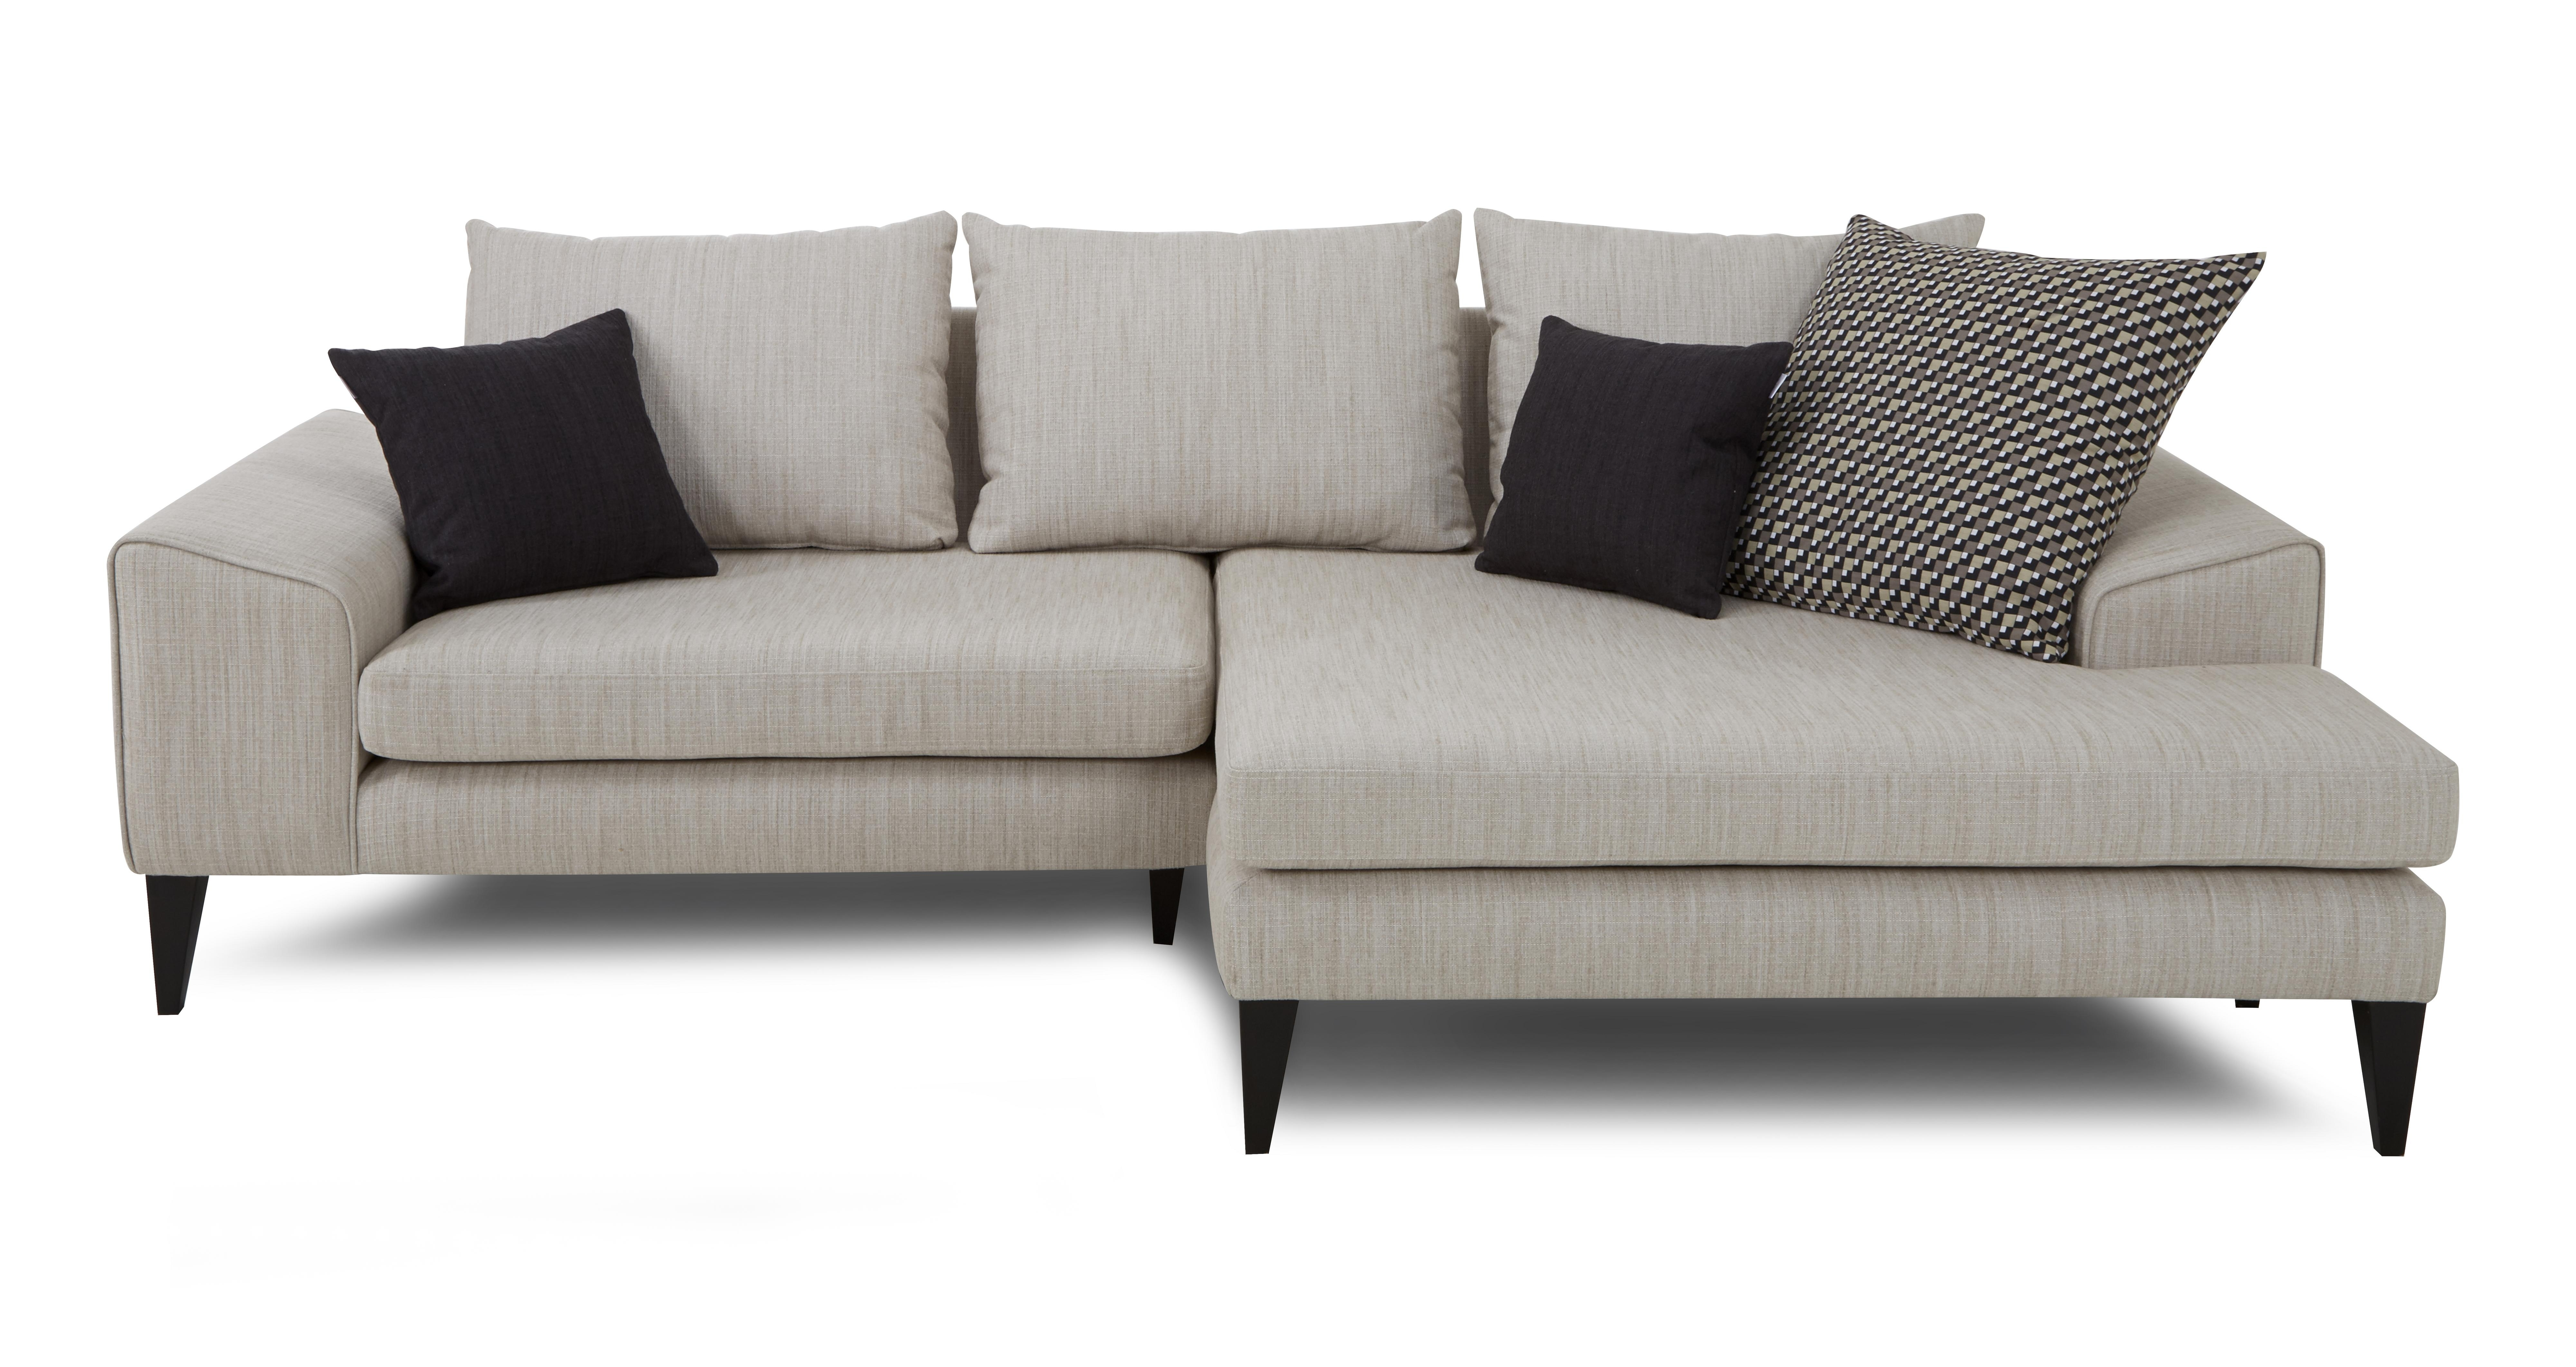 Grey Sofa Chaises Regarding Most Recently Released Sofa ~ Comfy Grey Leather Sofa 59C3F05F5A53A1F8C1F3C375Cf42D (View 5 of 15)